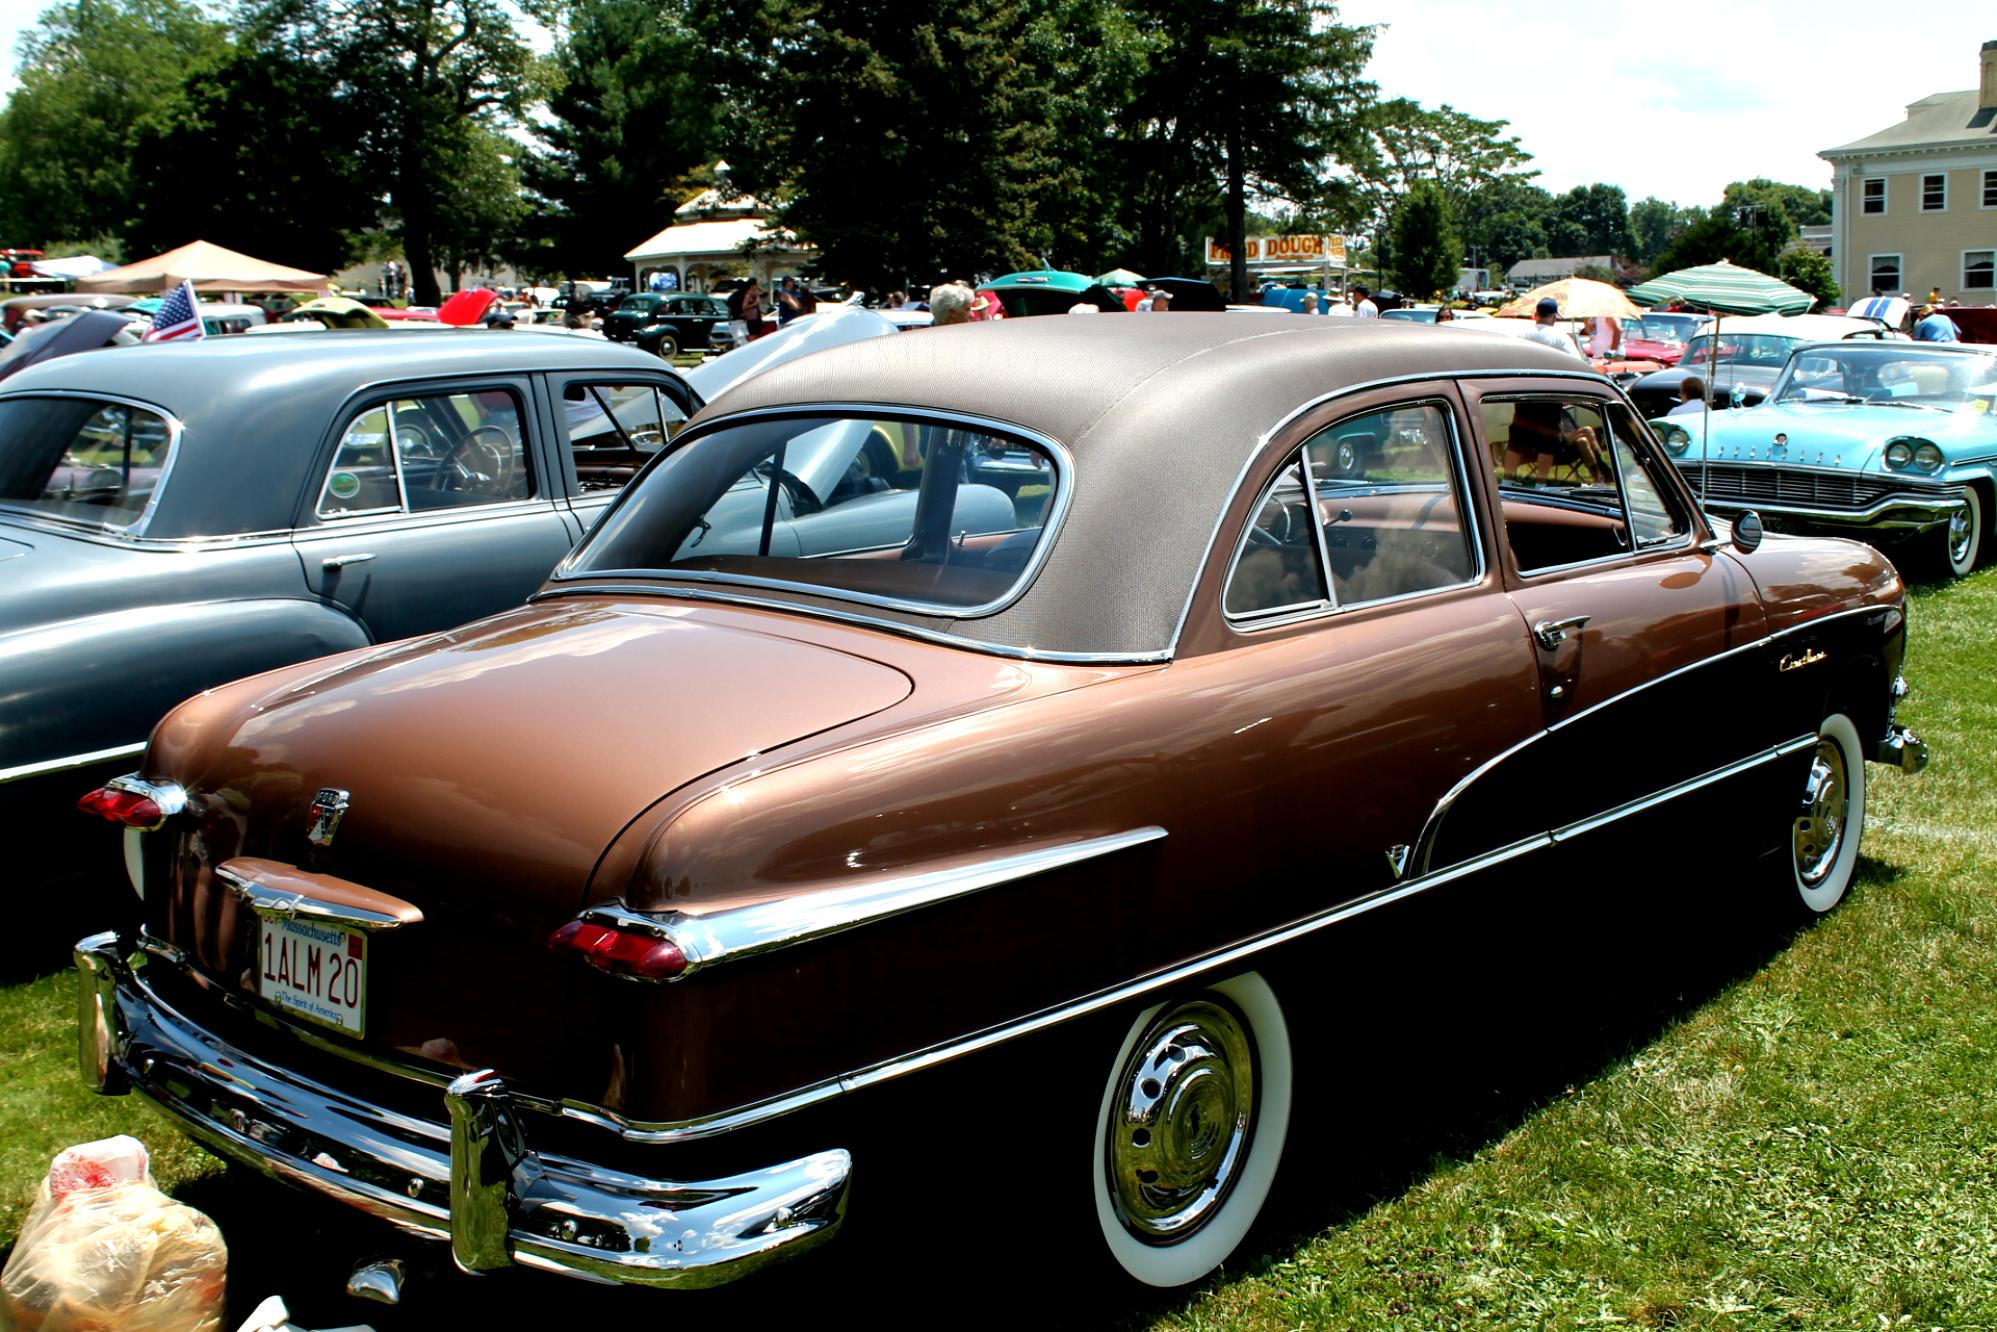 Ford Crestliner 1949 On Crown Victoria